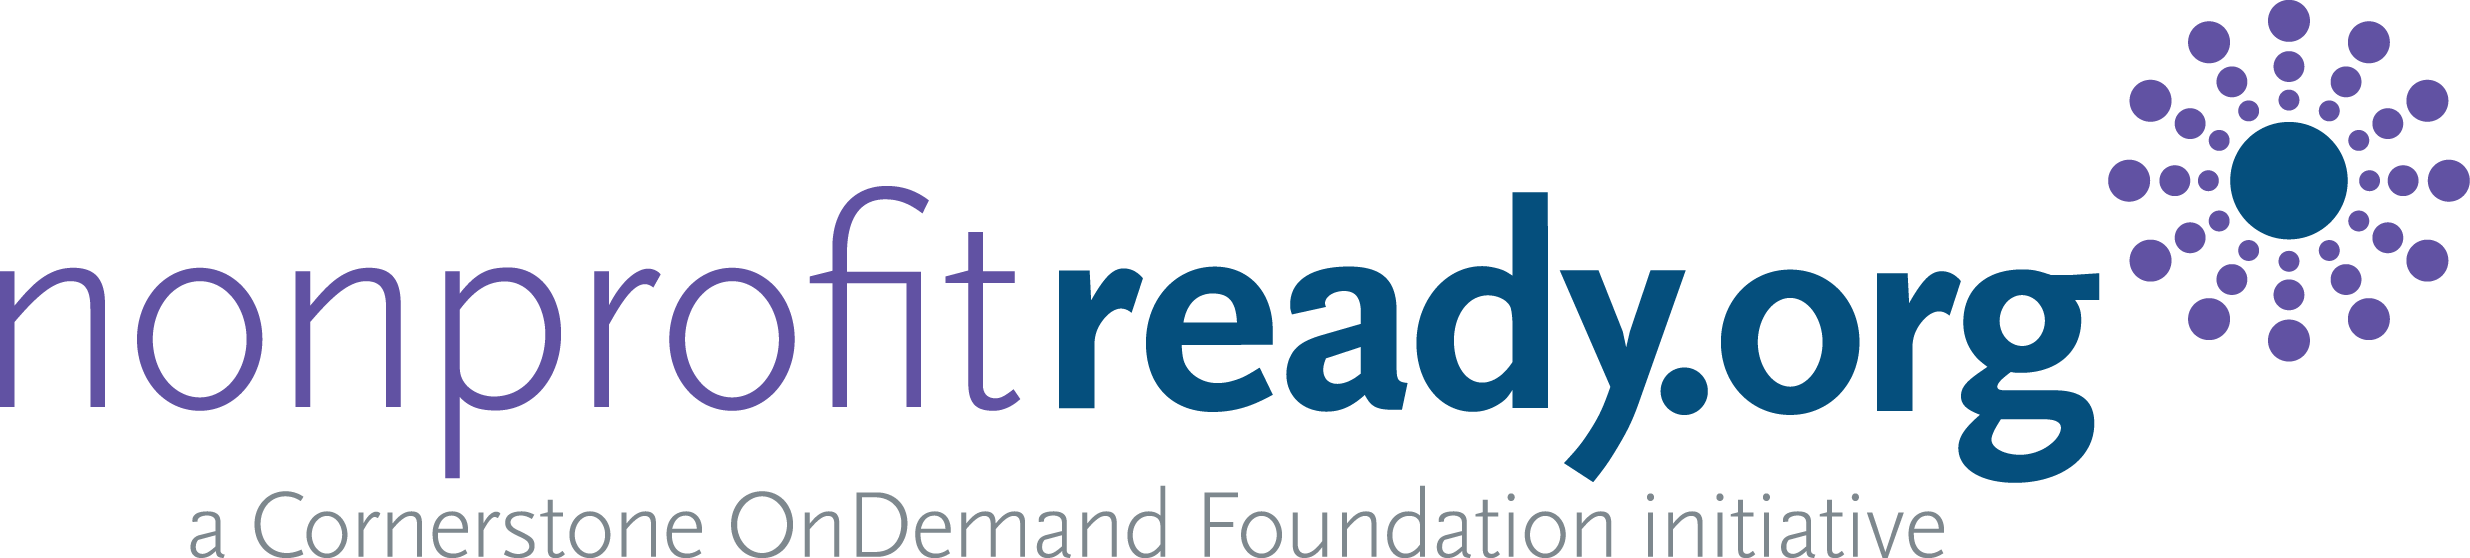 NonProfitReady.org icon